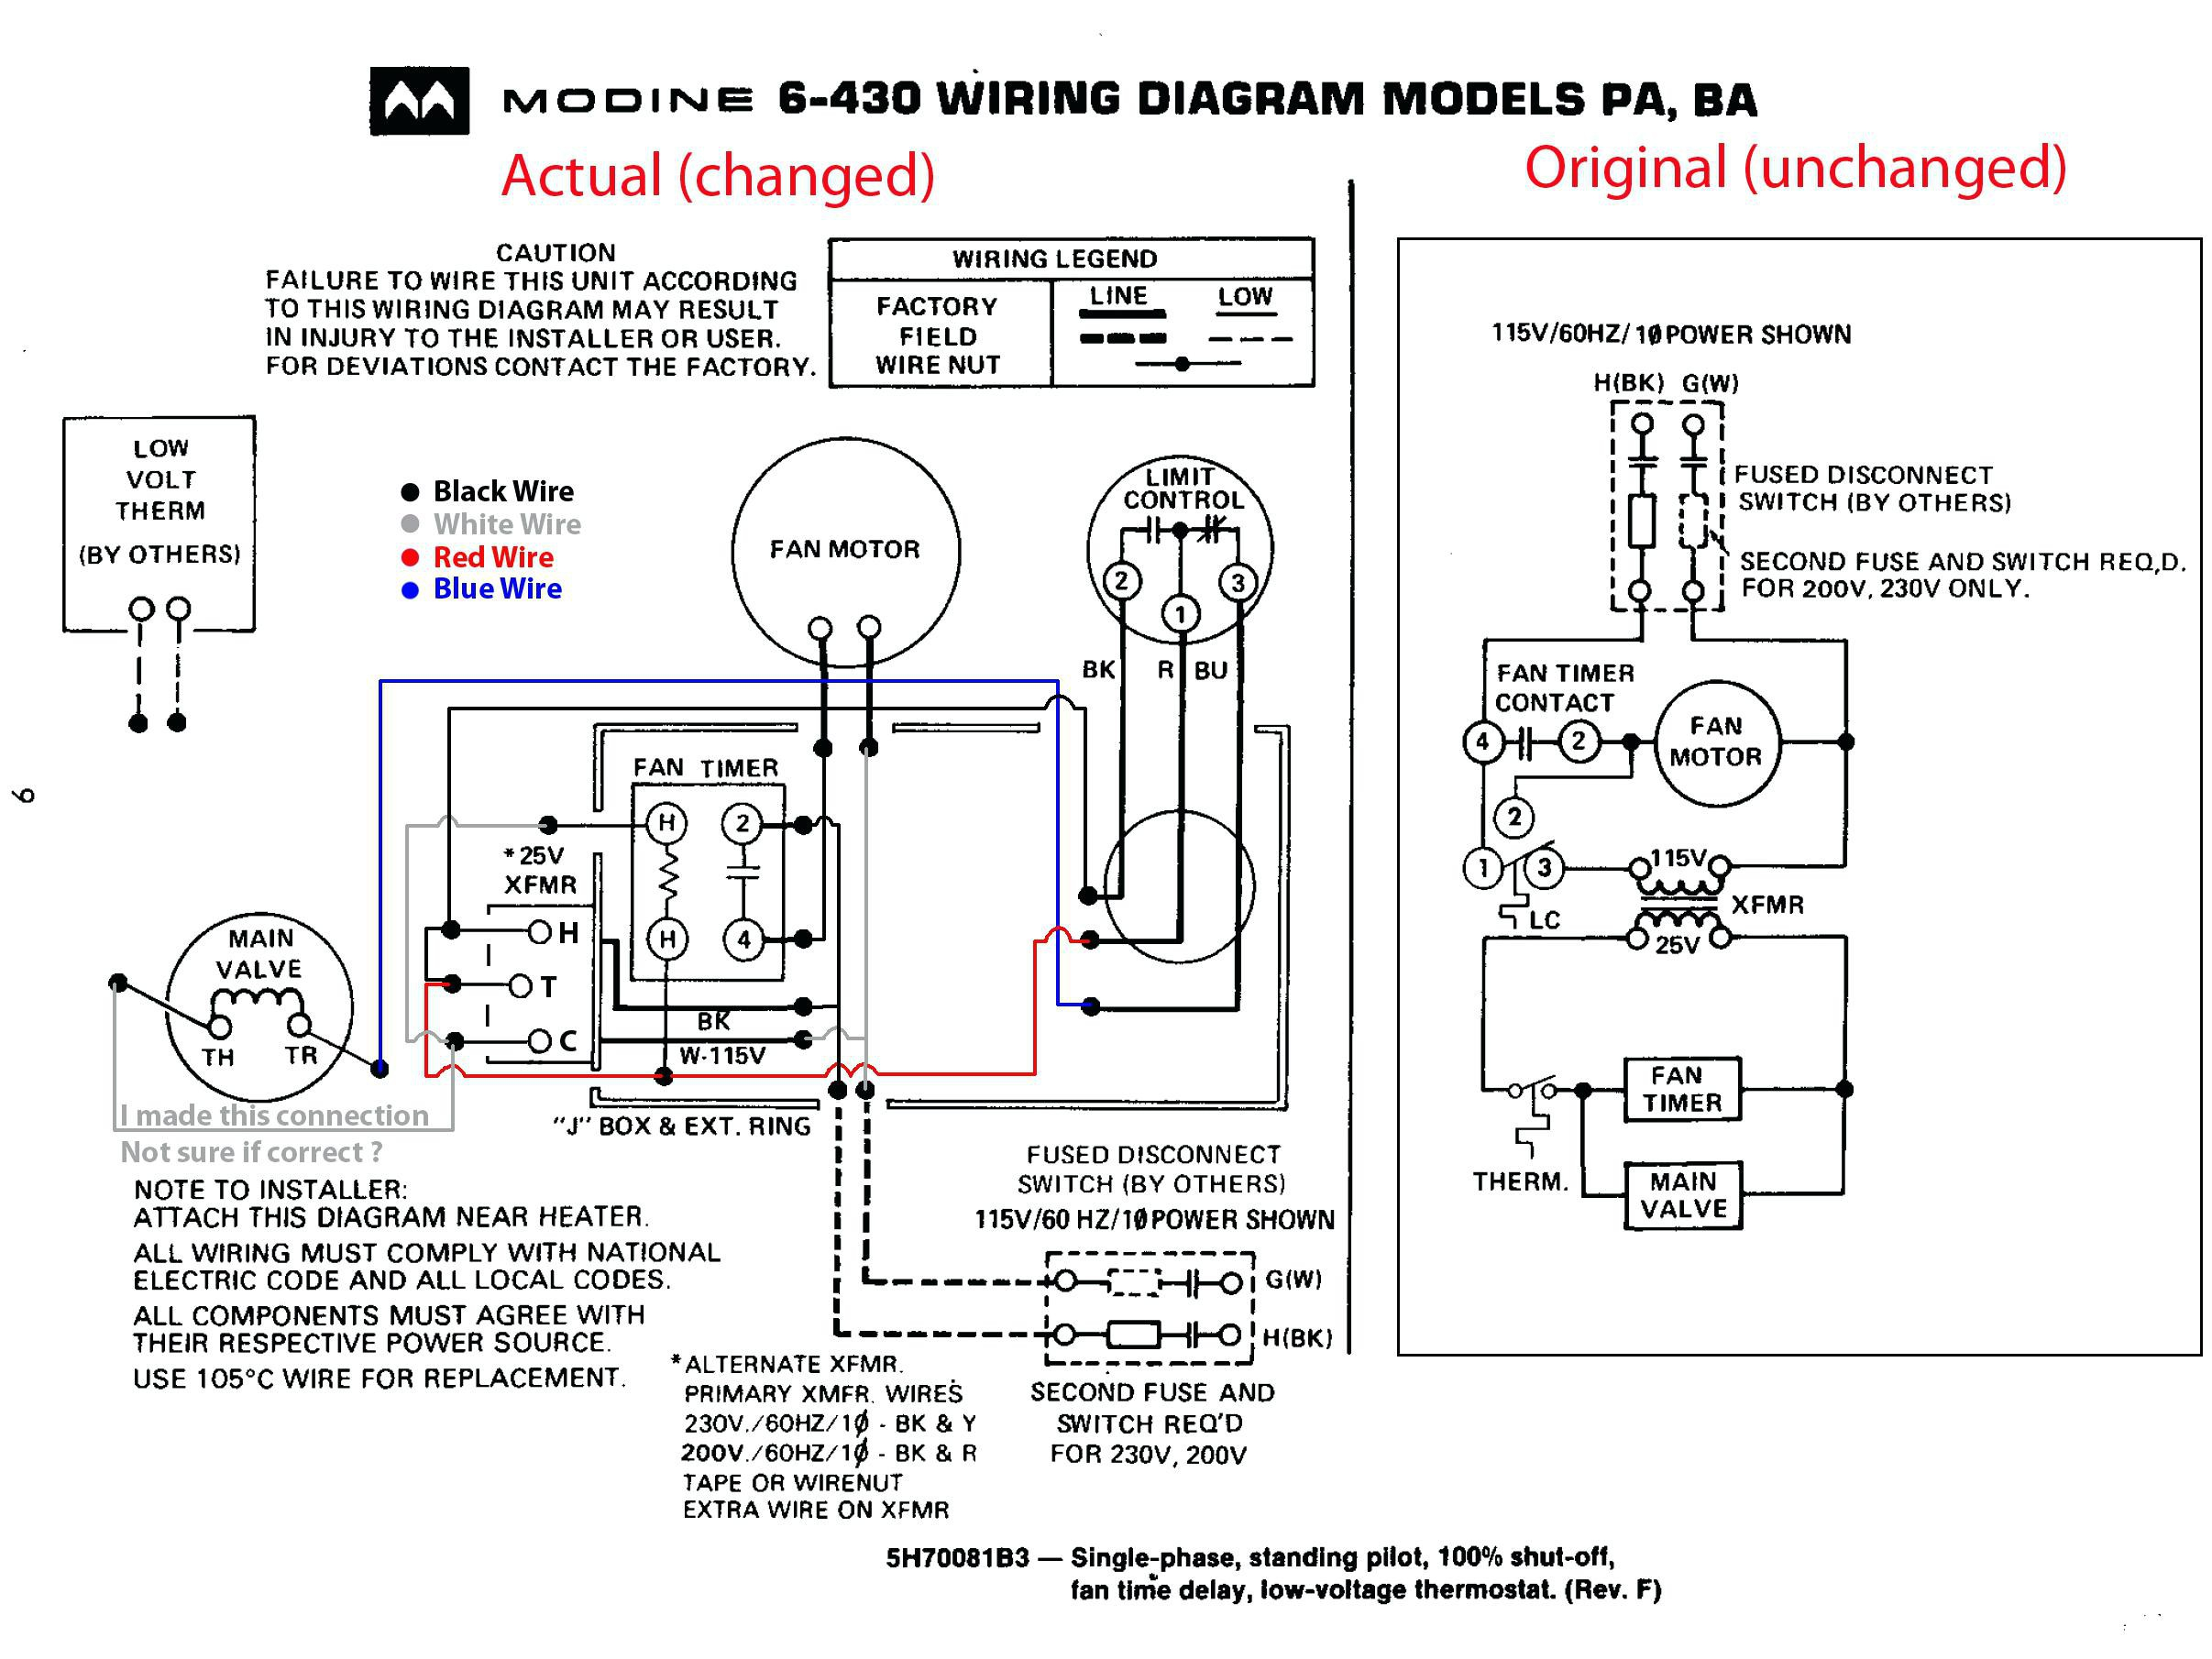 modine pa75ab wiring diagram Collection-Modine Gas Heater Wiring Diagram Elegant Modine Gas Heater Wiring Diagram Wiring Diagram 20-t